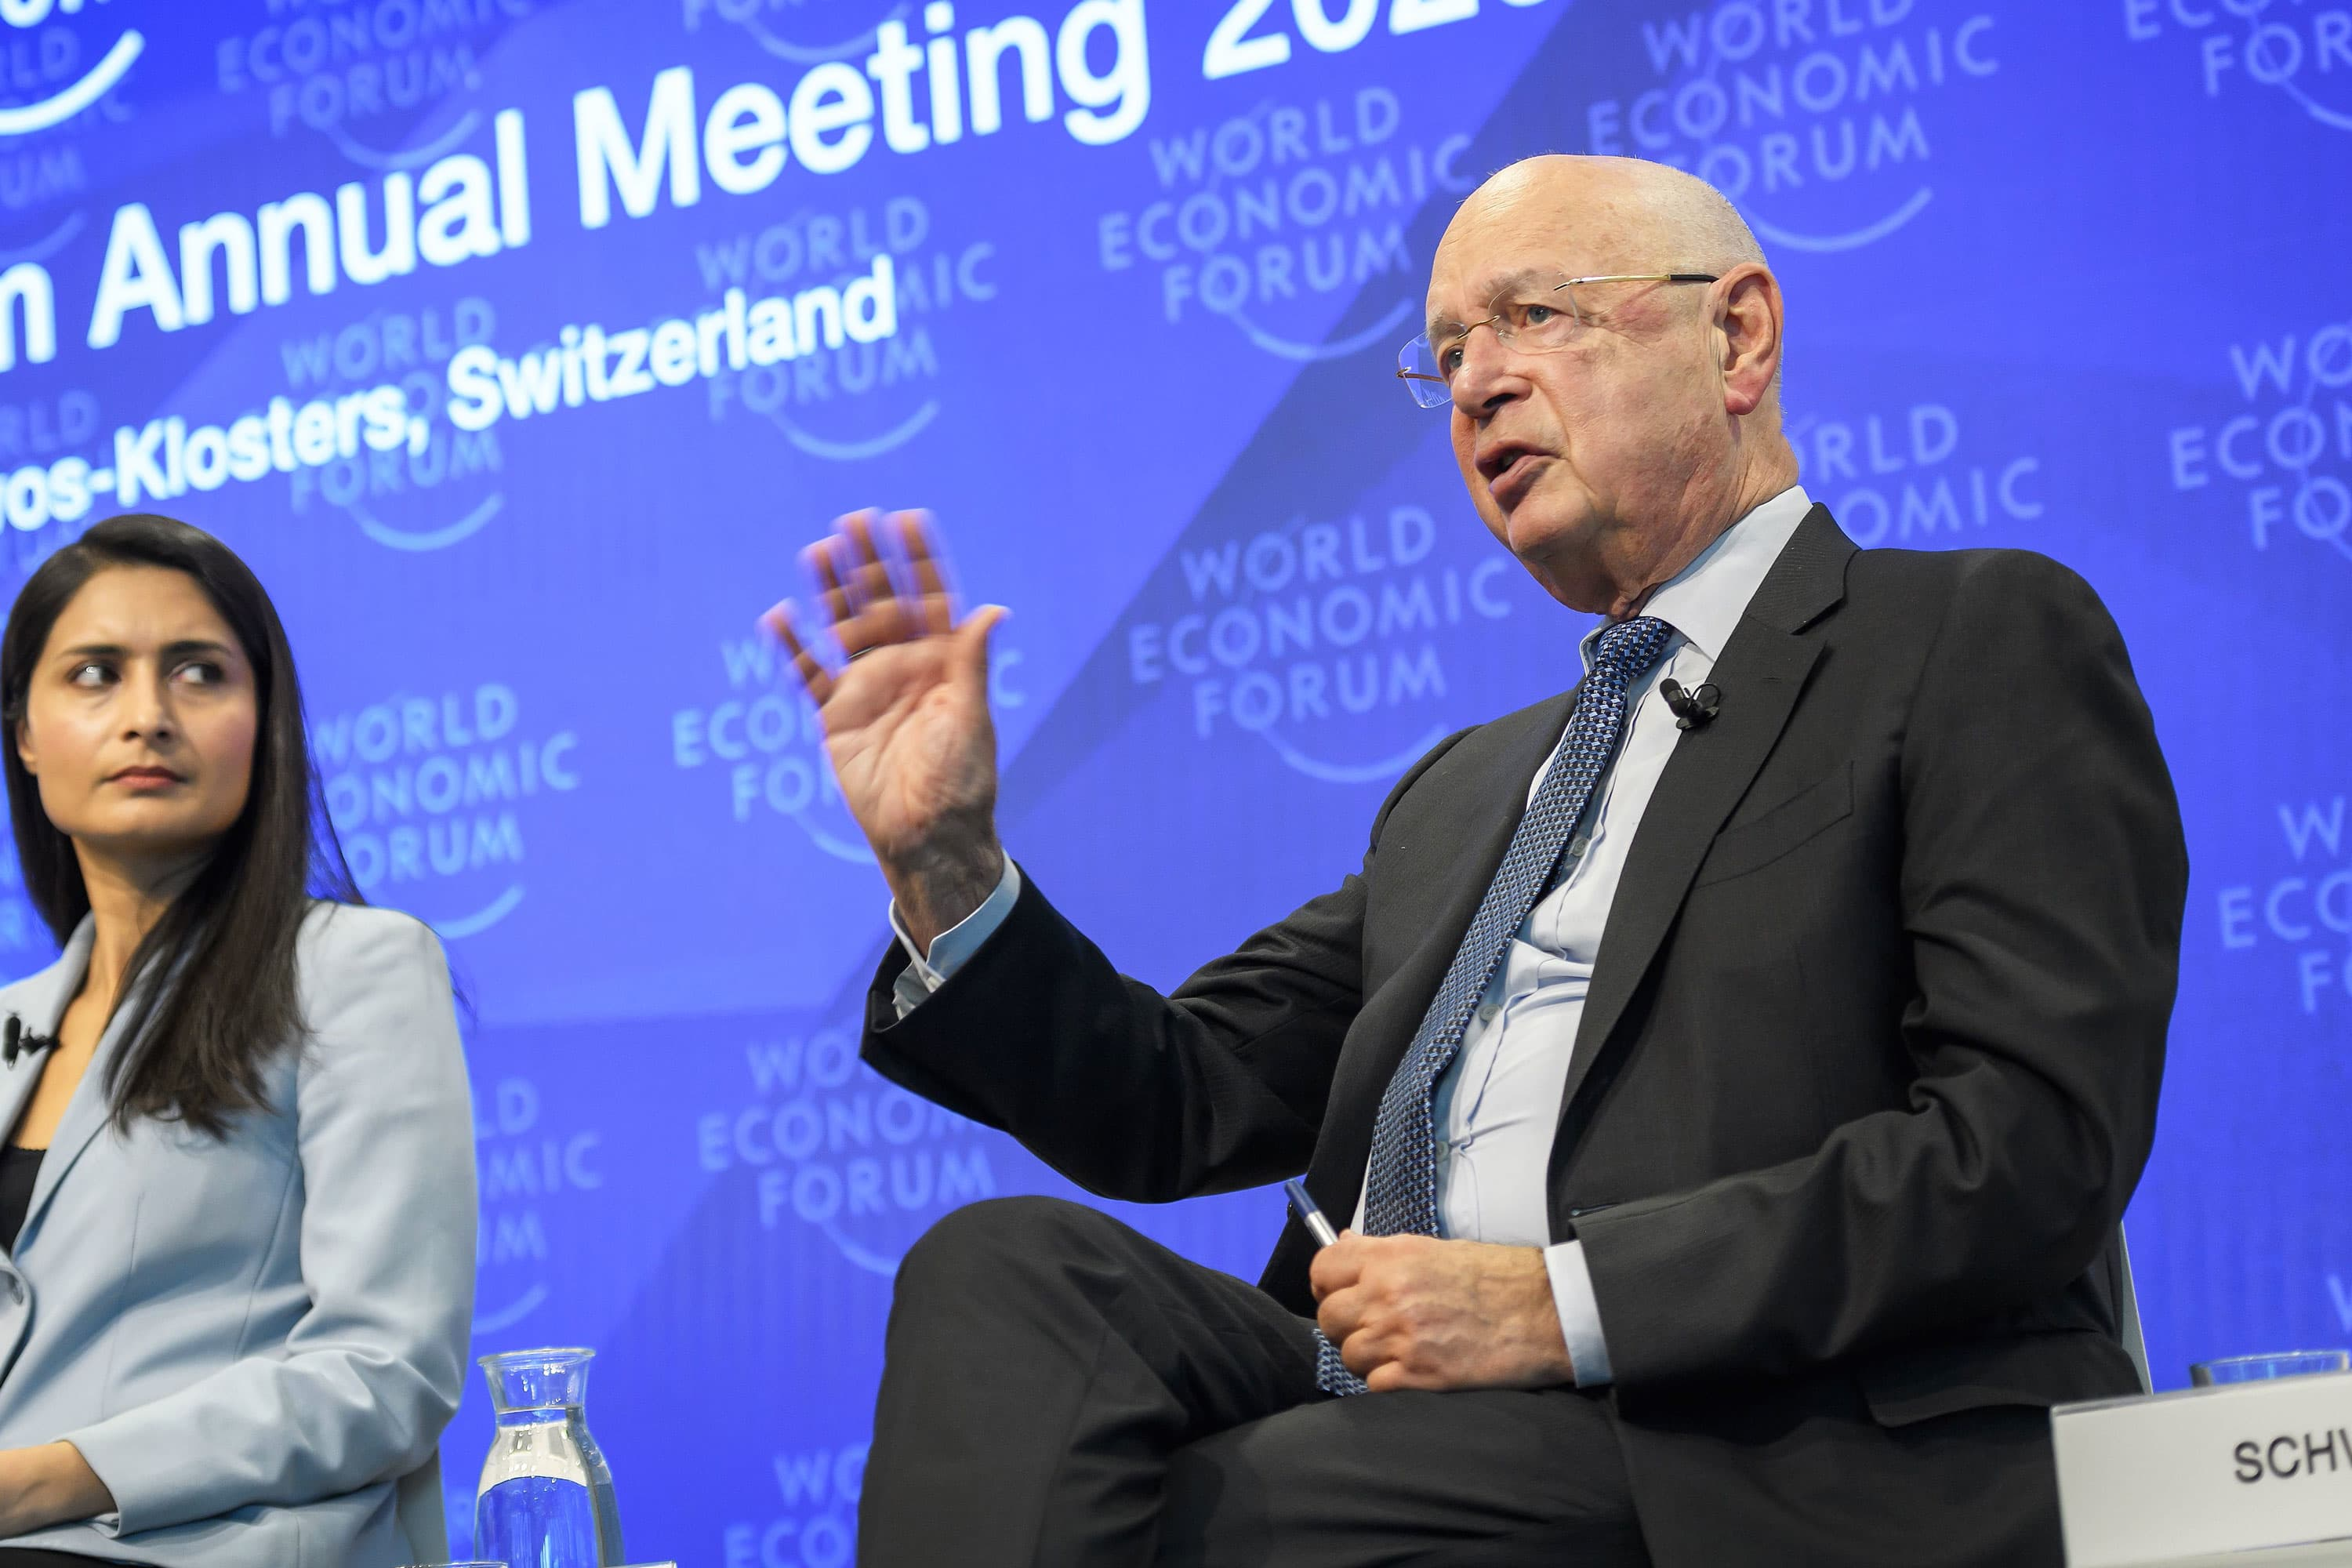 Davos elites will be buzzing about corporate social responsibility – and its limits